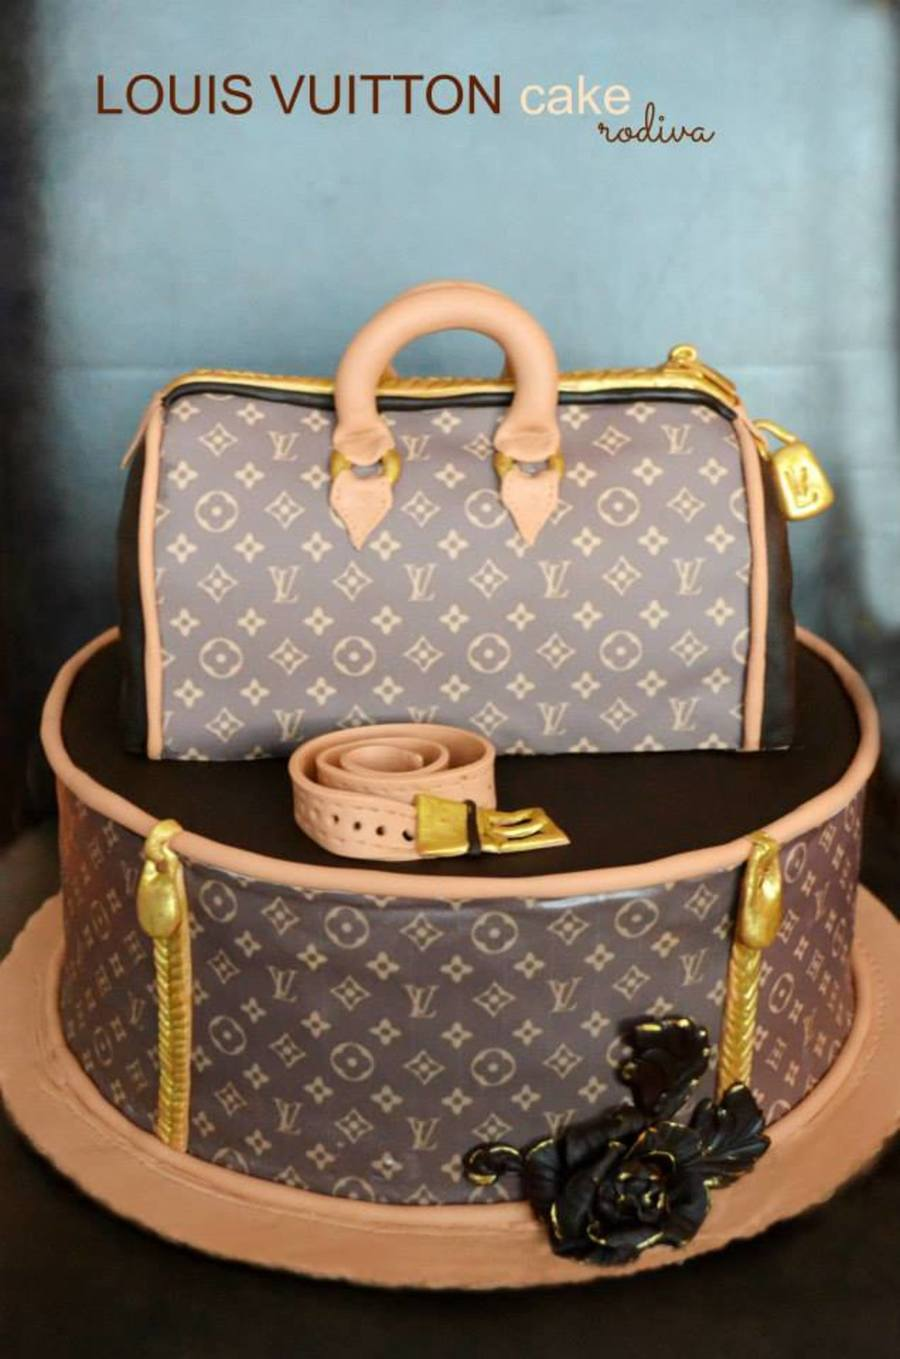 Louis Vuitton Cake on Cake Central